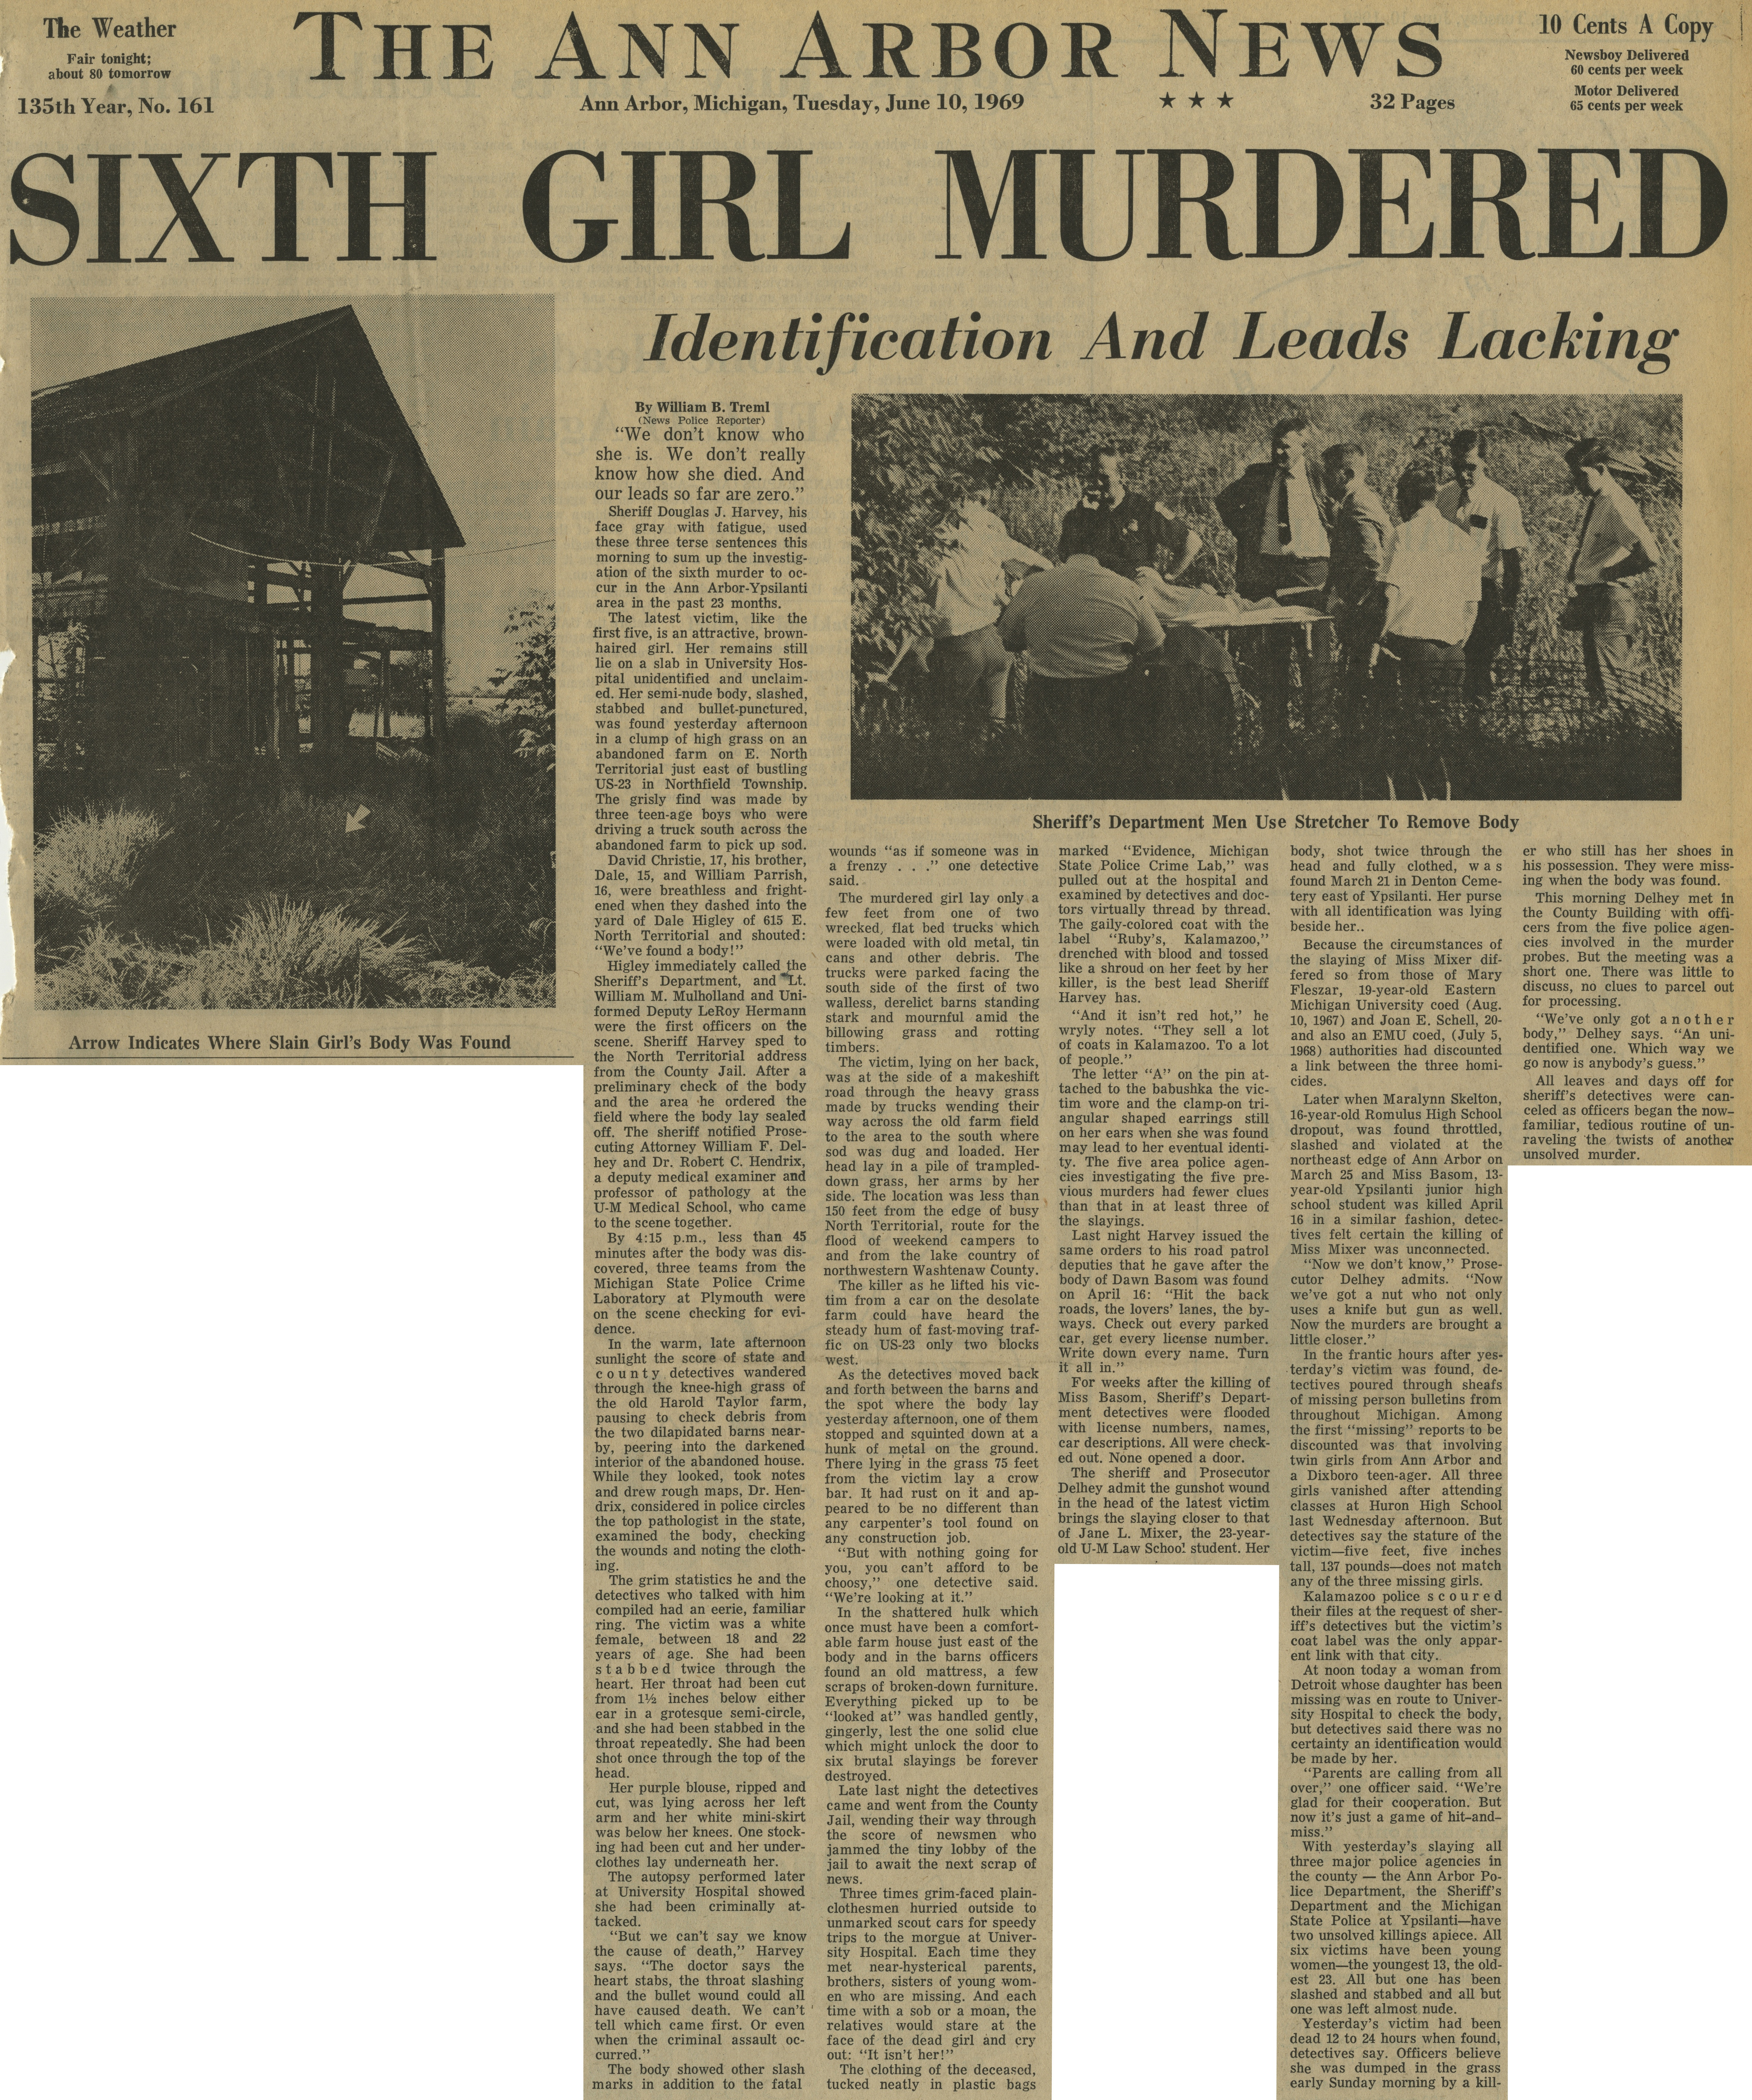 Sixth Girl Murdered image